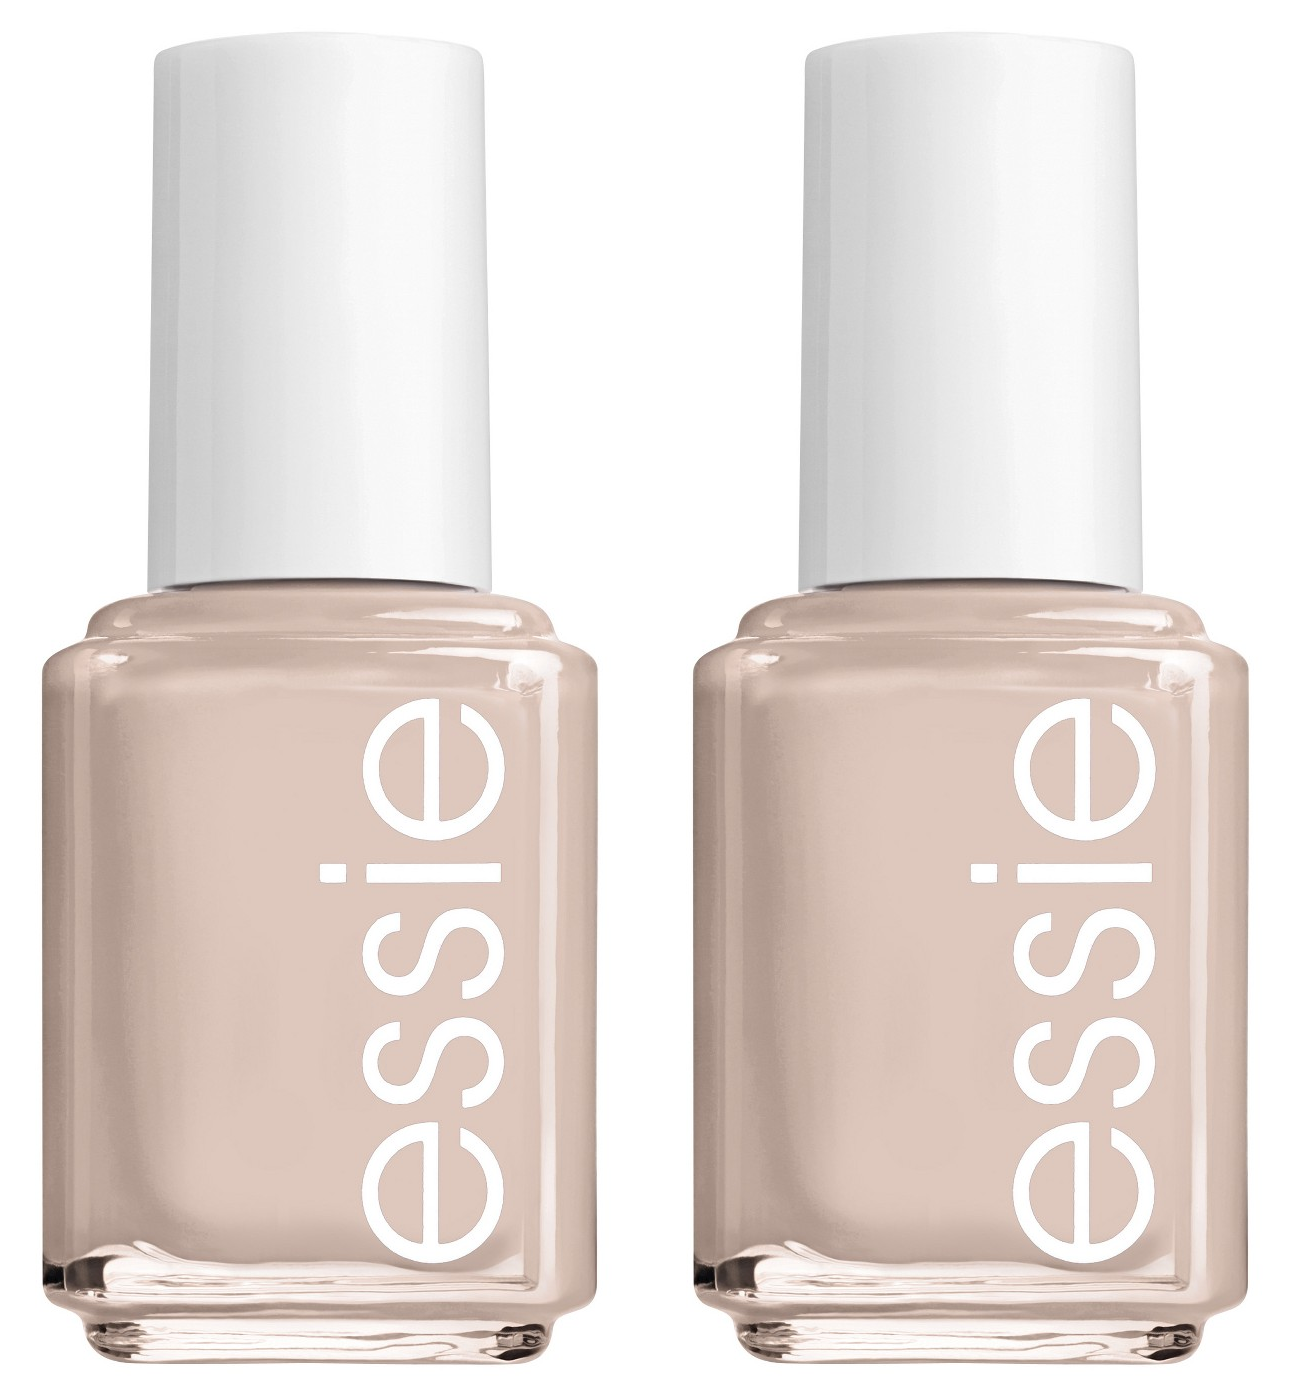 This Week At Target When You Purchase 2 Select Essie Nail Polishes Get A Free 5 Gift Card Price Starts 4 29 For Polish